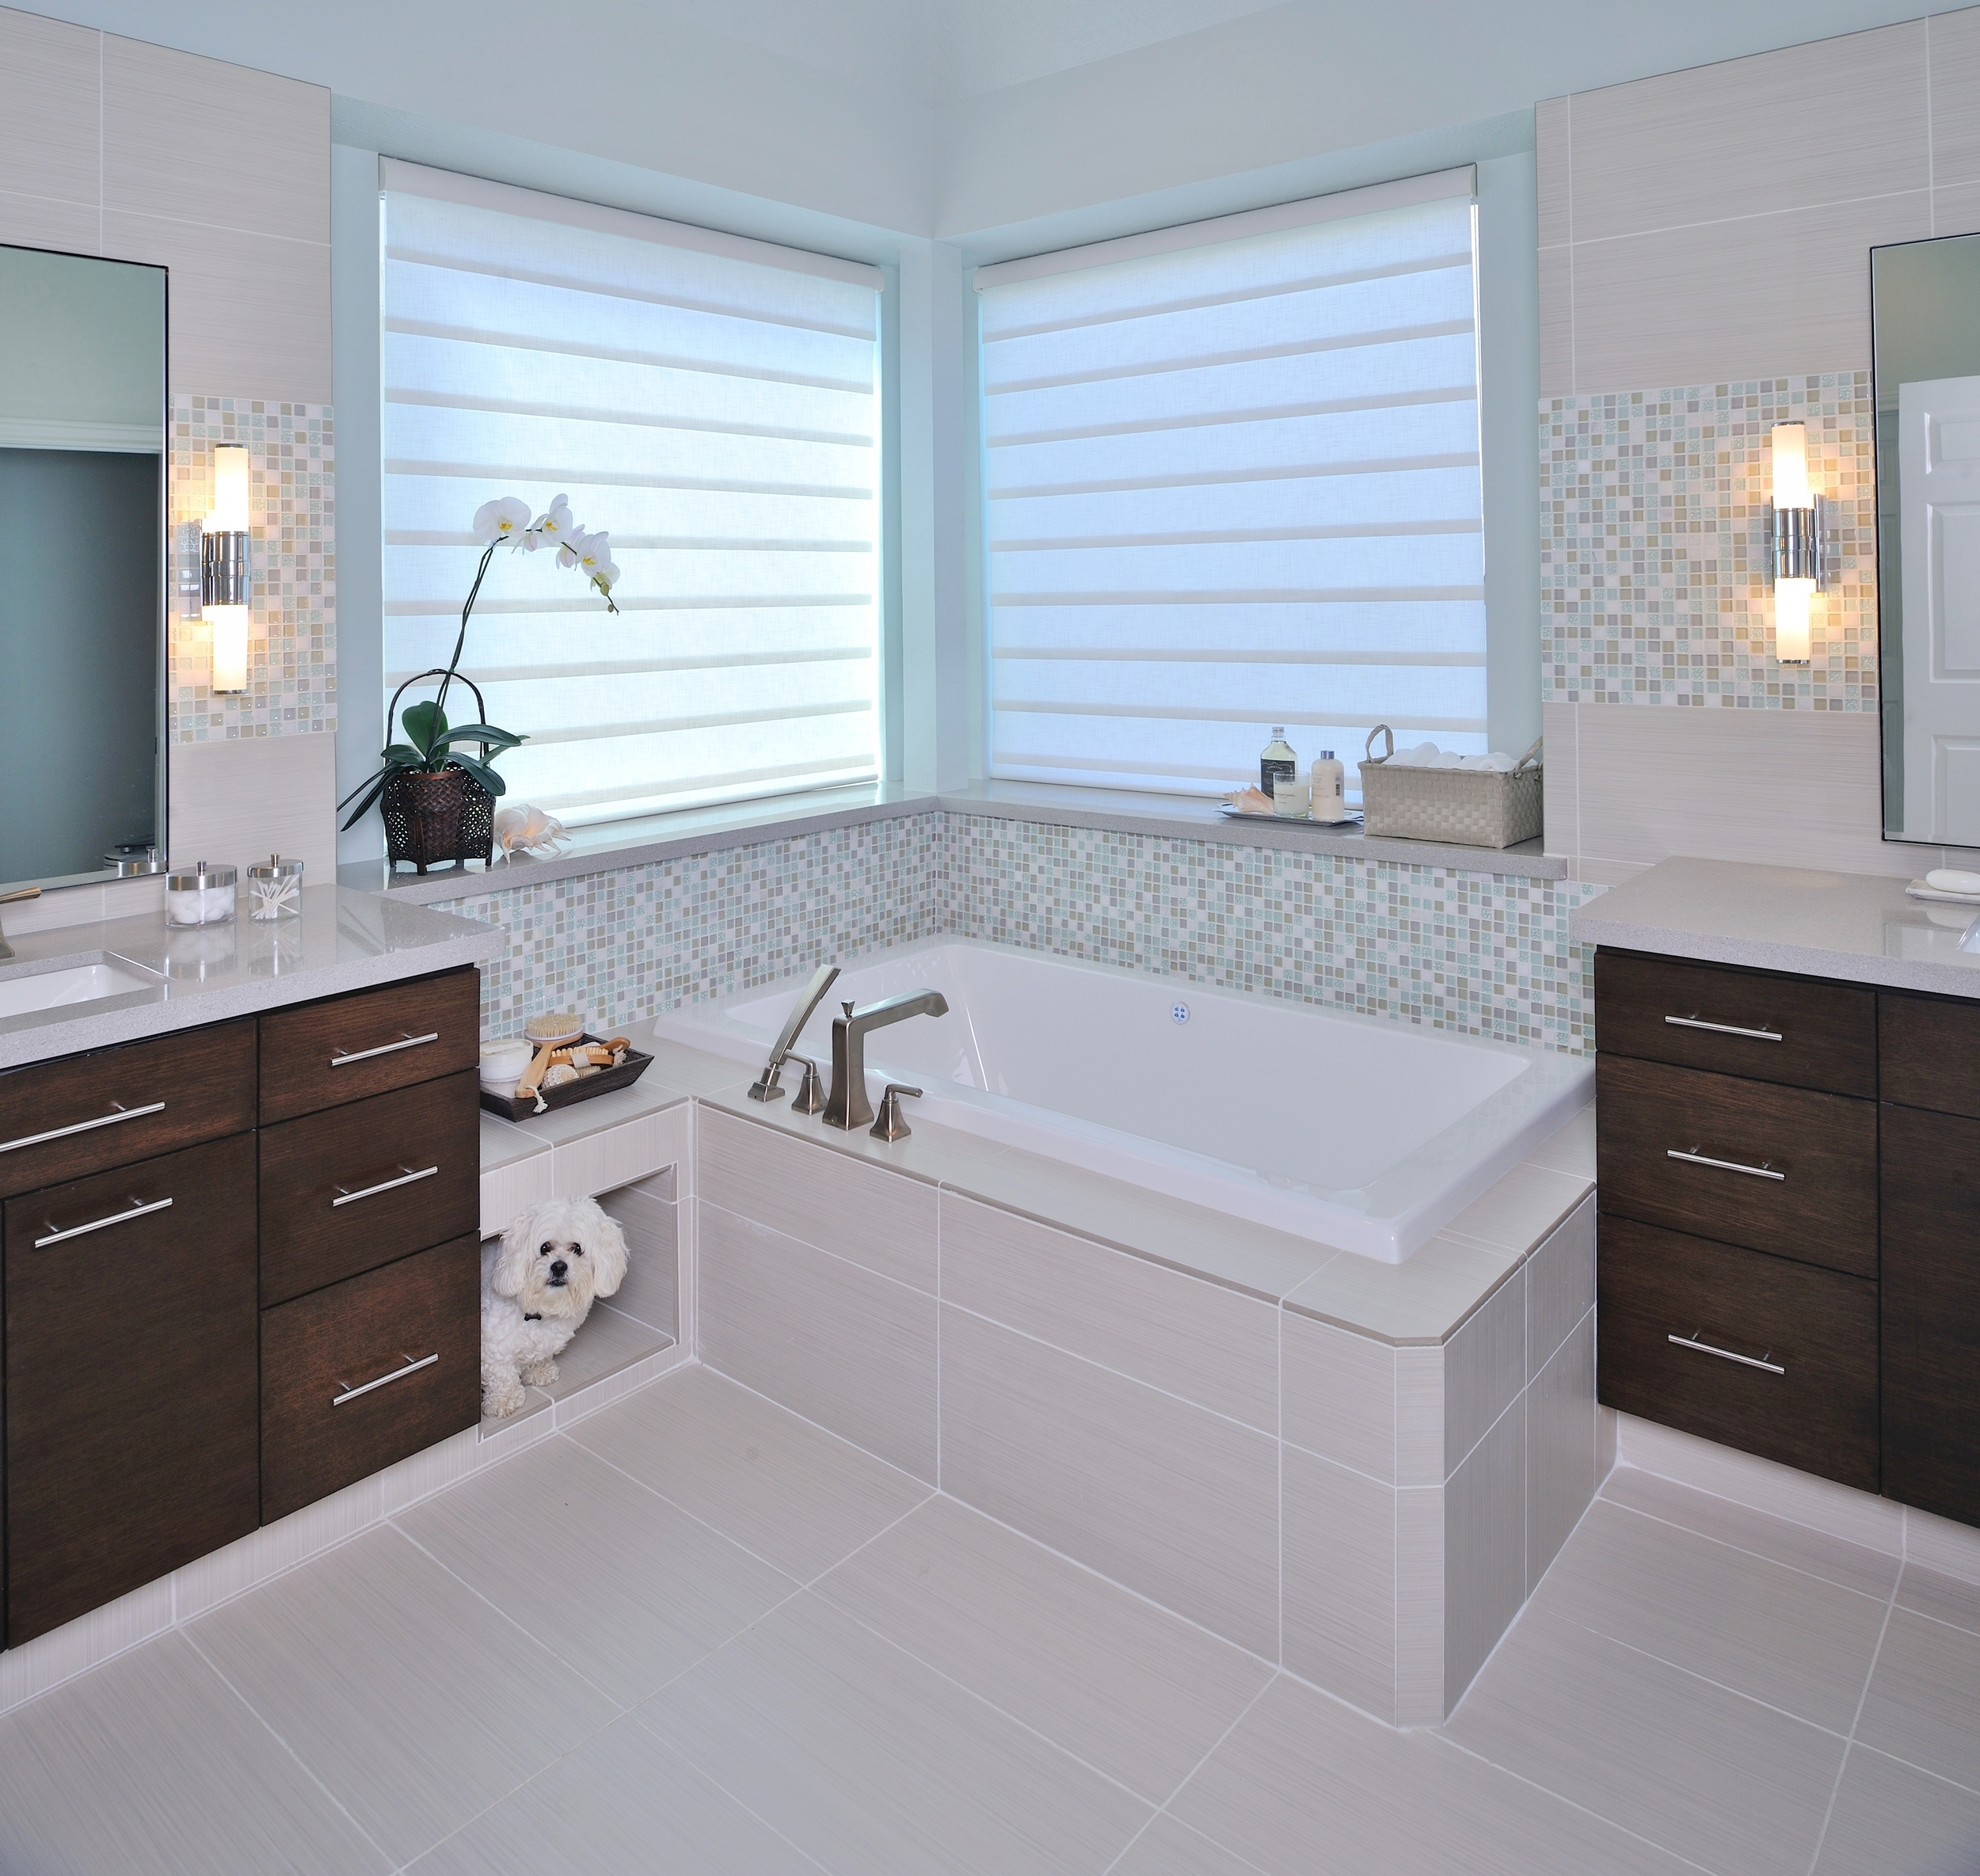 Bathroom Templates For Planning Planning A Bathroom Remodel Consider The Layout First Designed